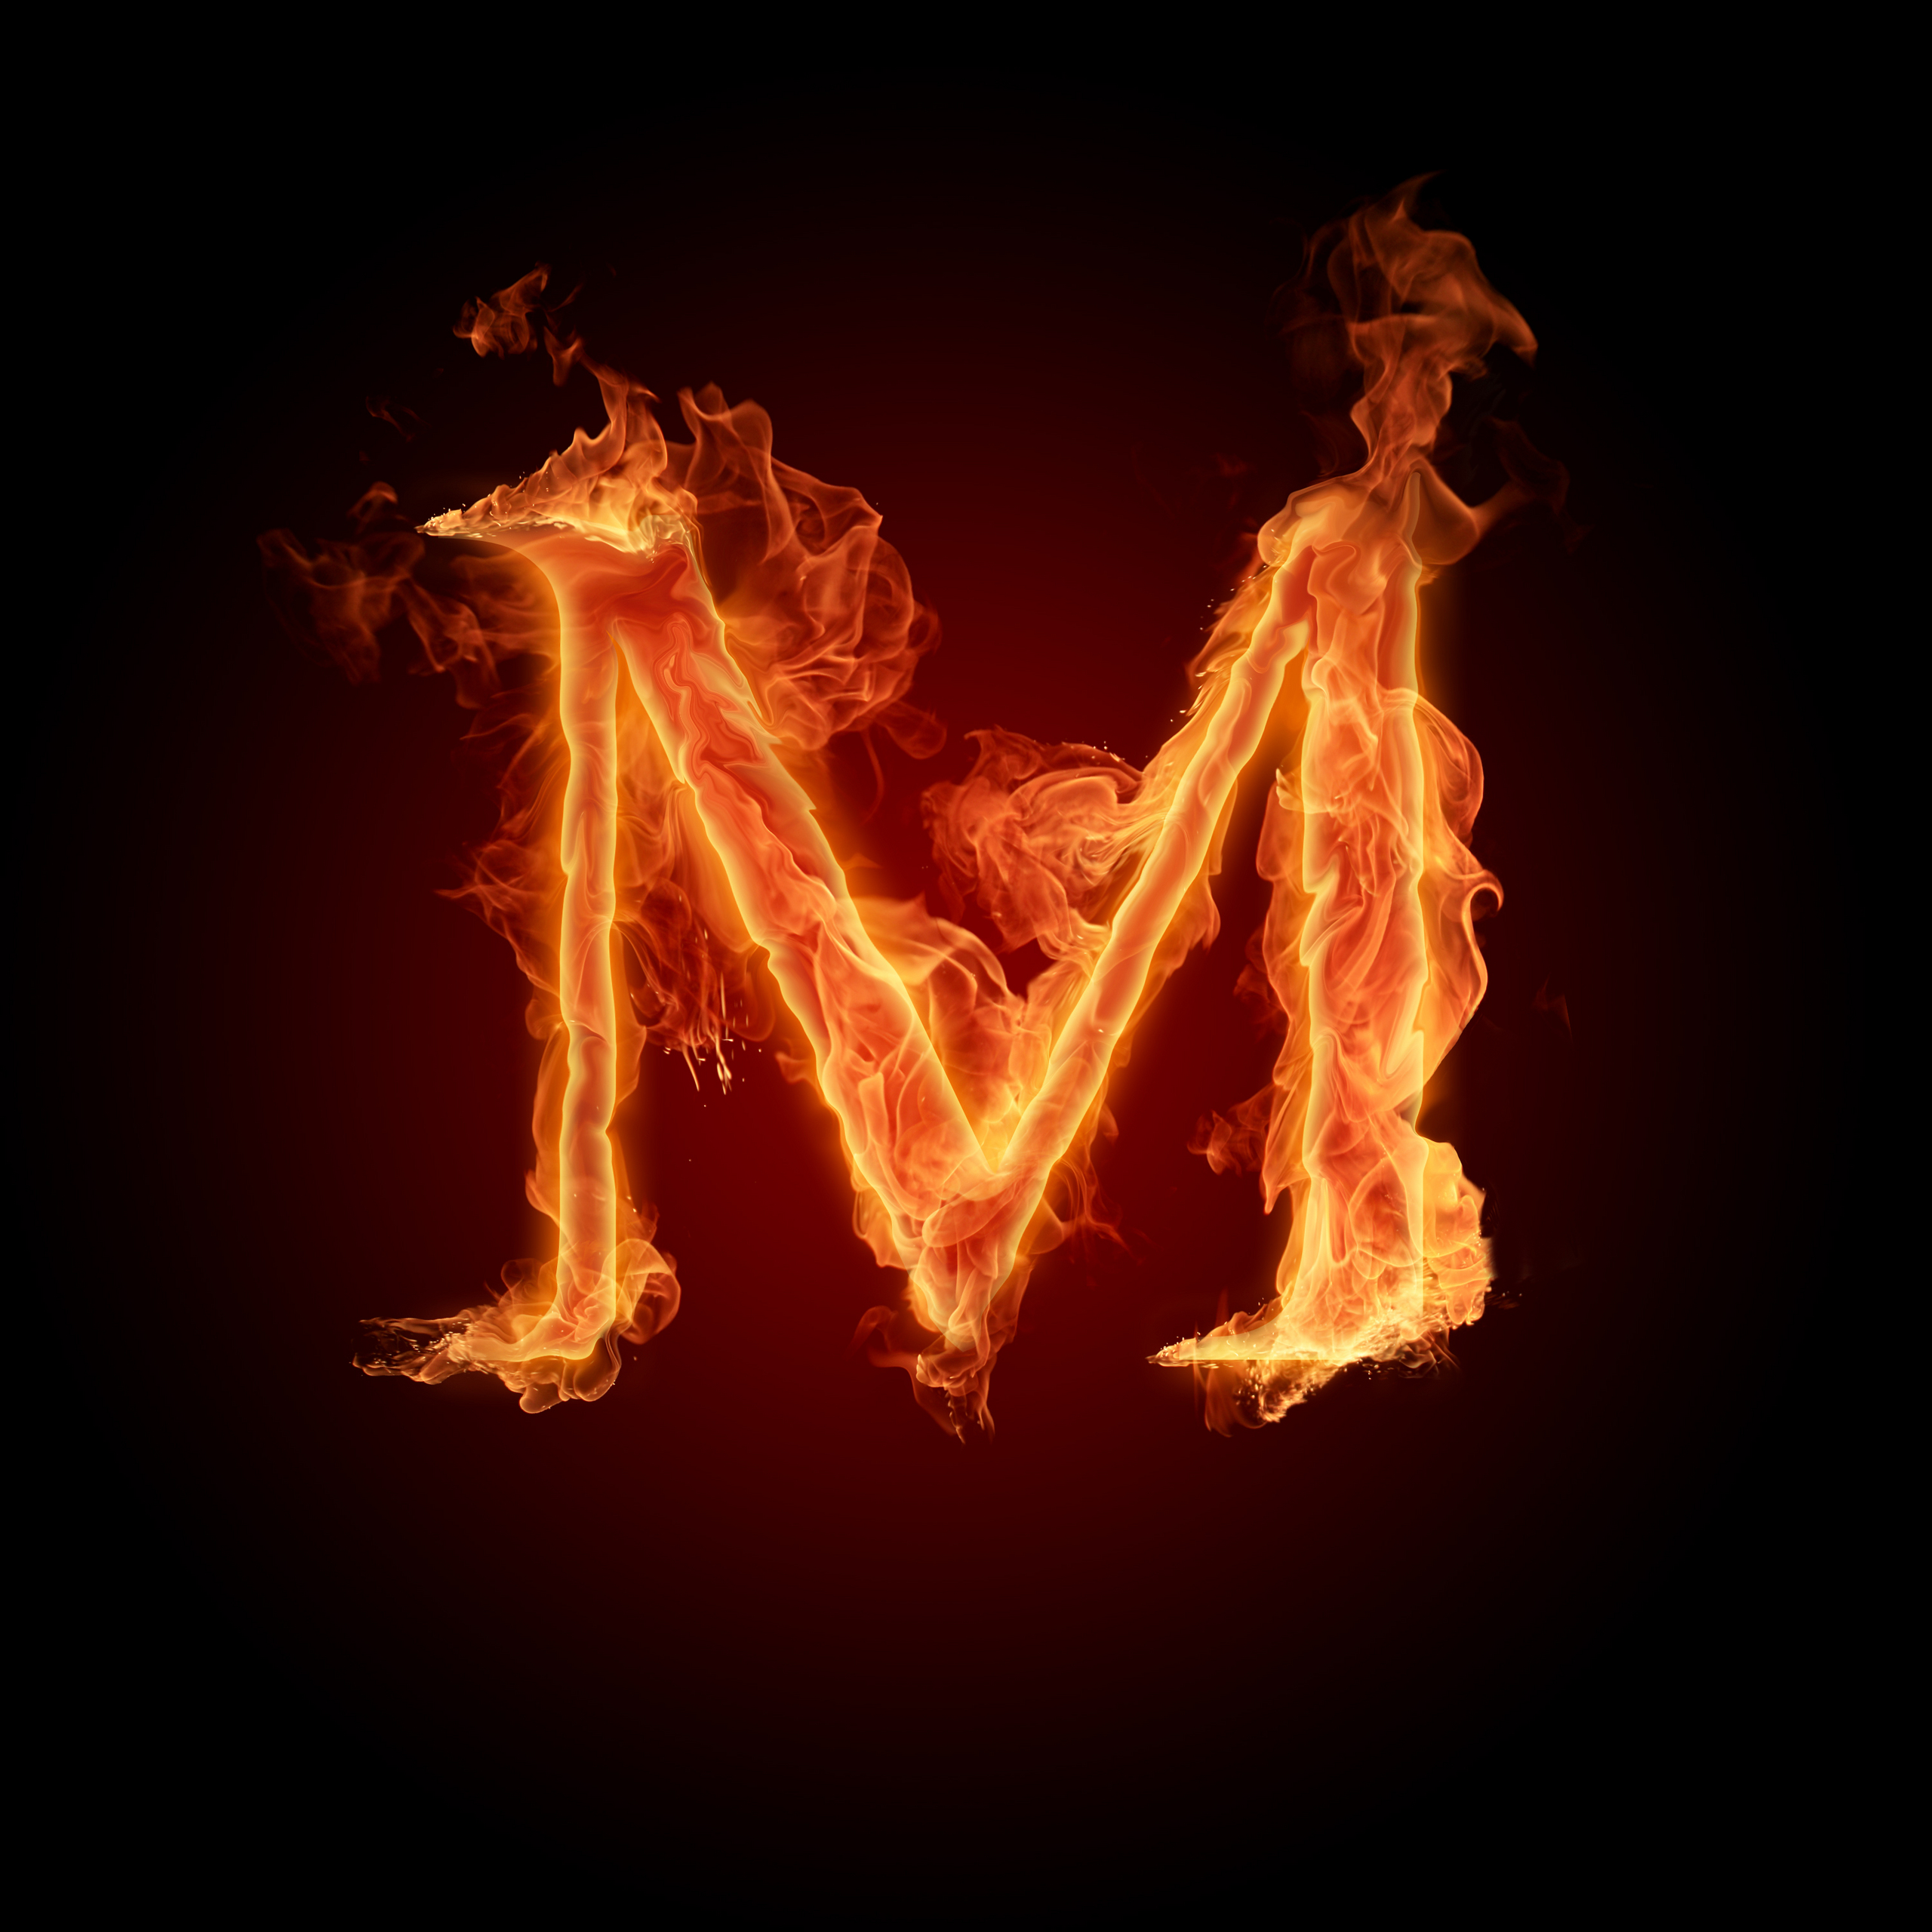 o alfabeto imagens The letter M HD wallpaper and background ...